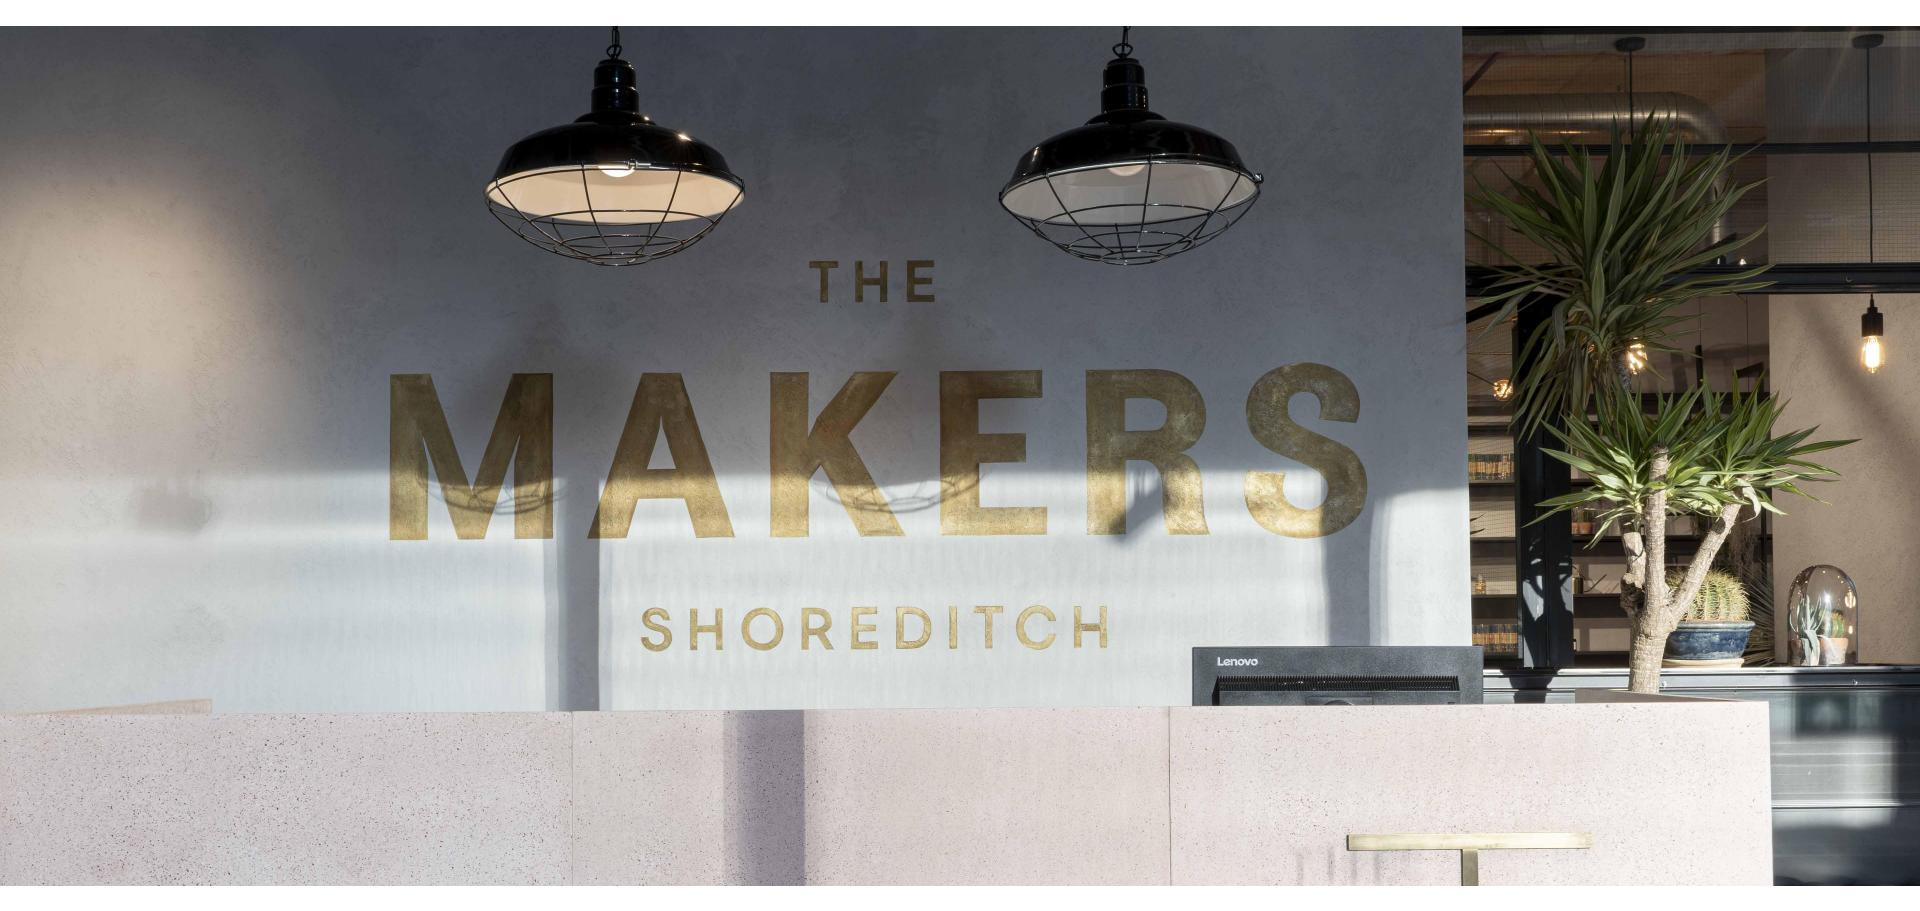 THE MAKERS